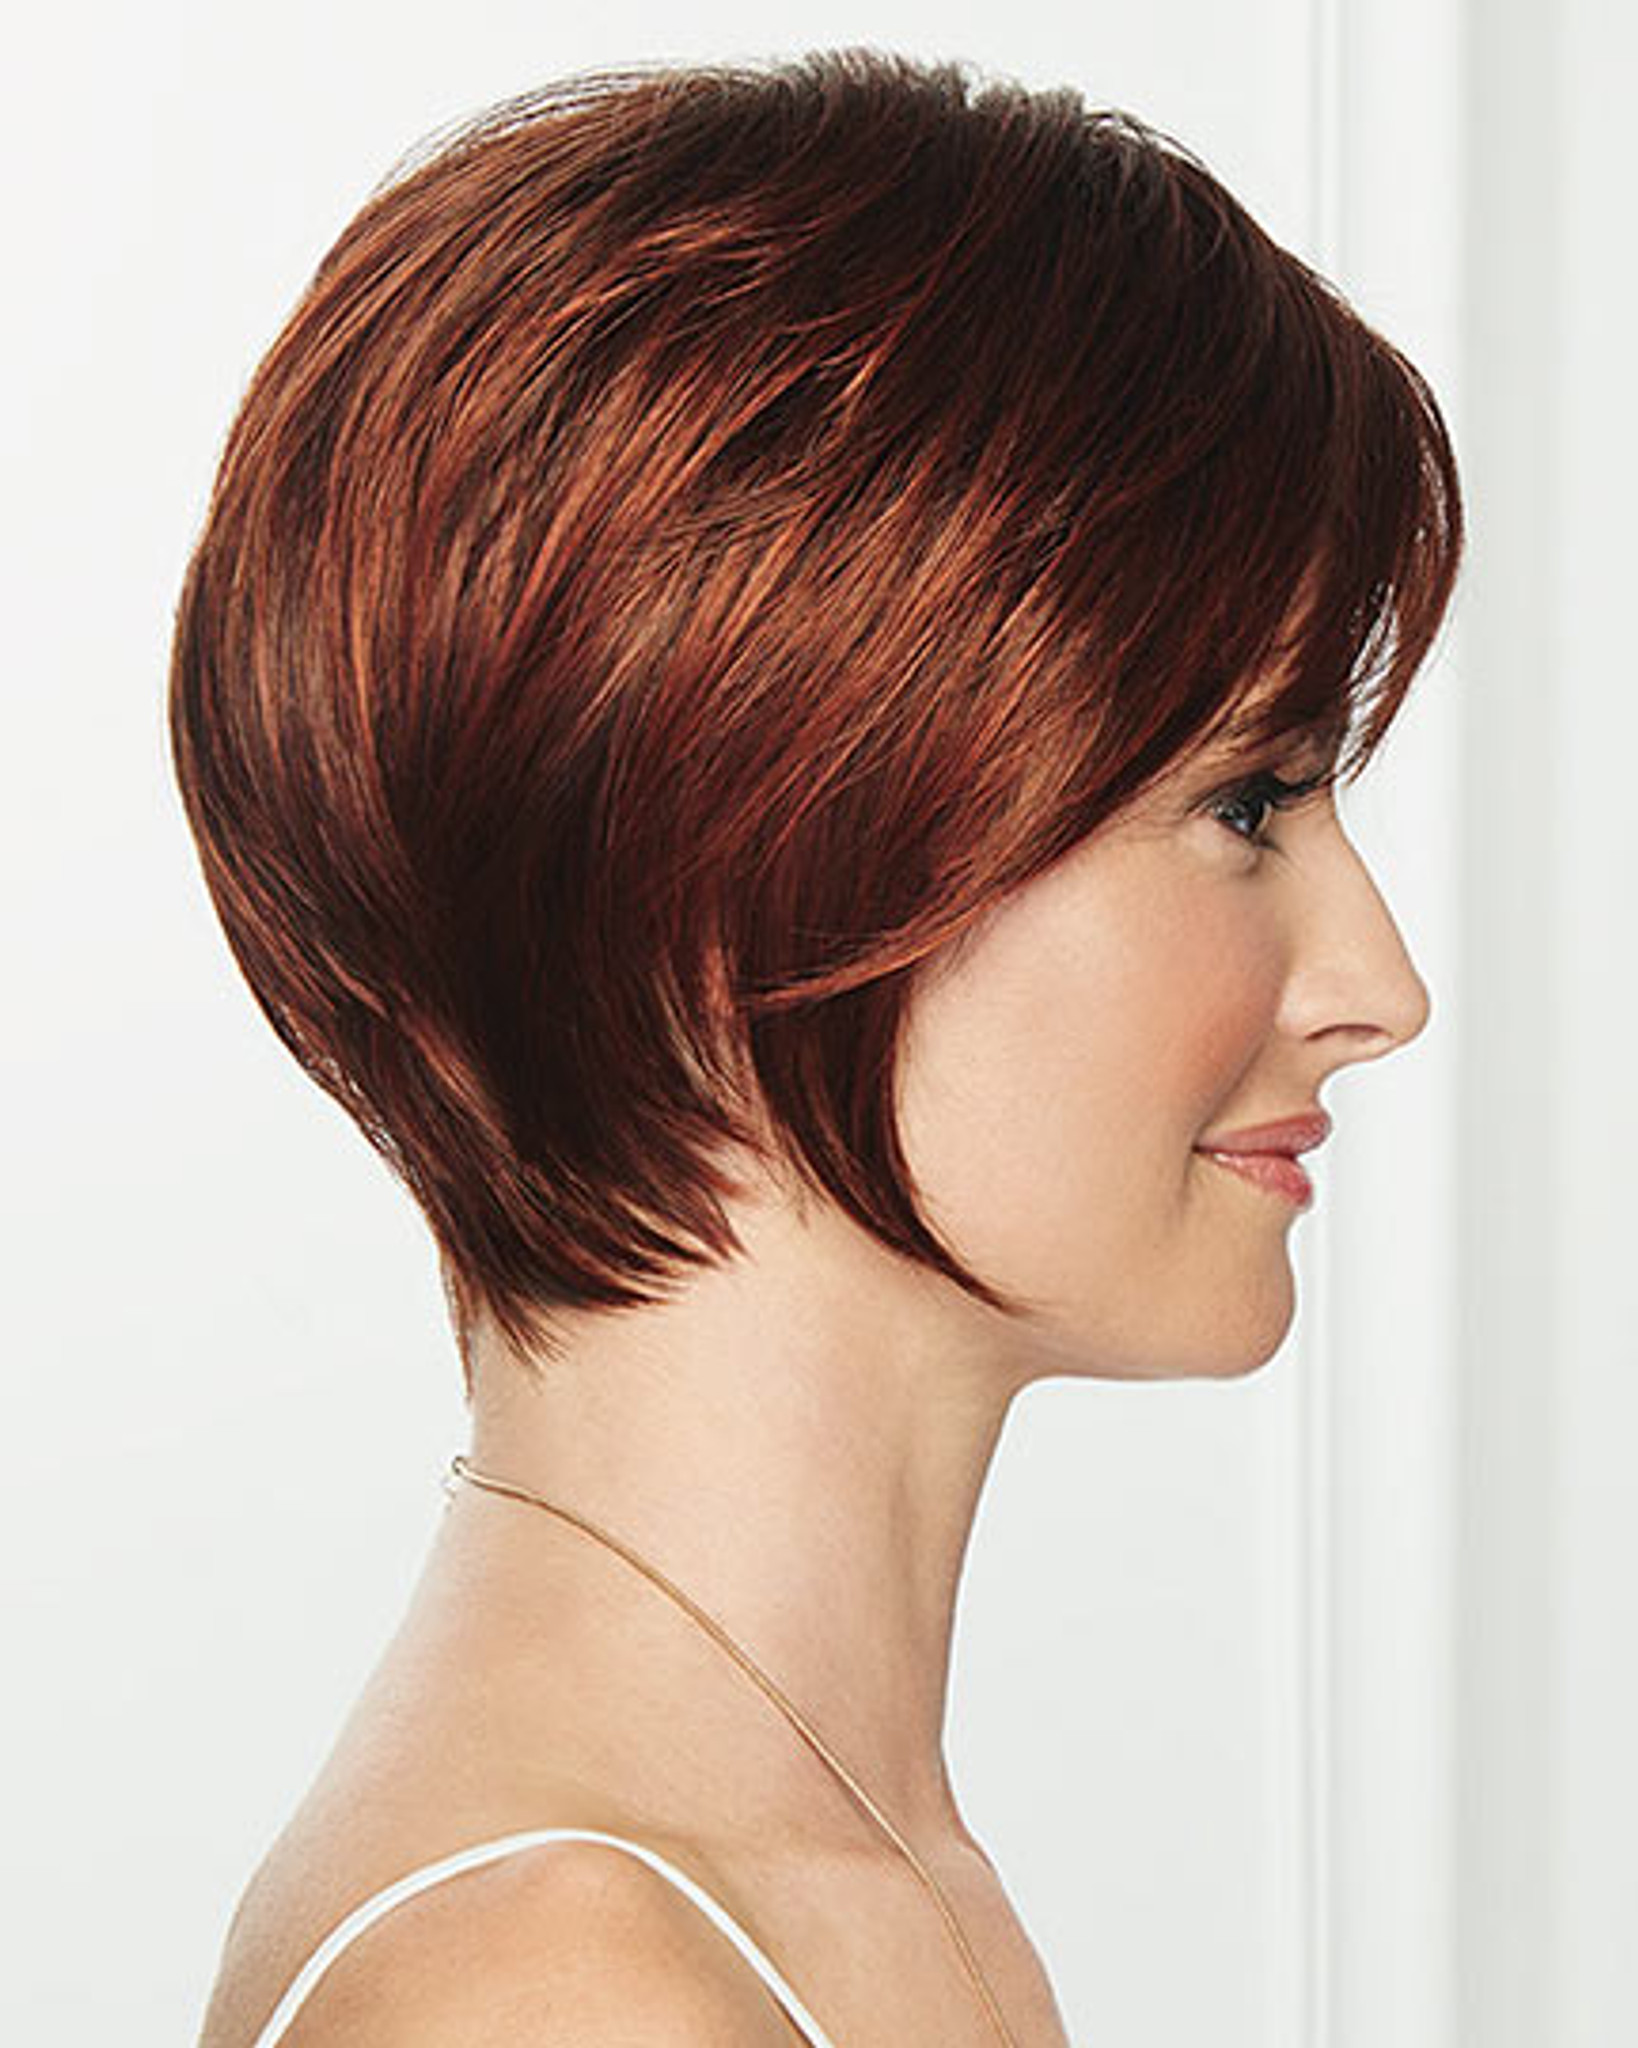 Contempo Cut | Gabor Wigs side view